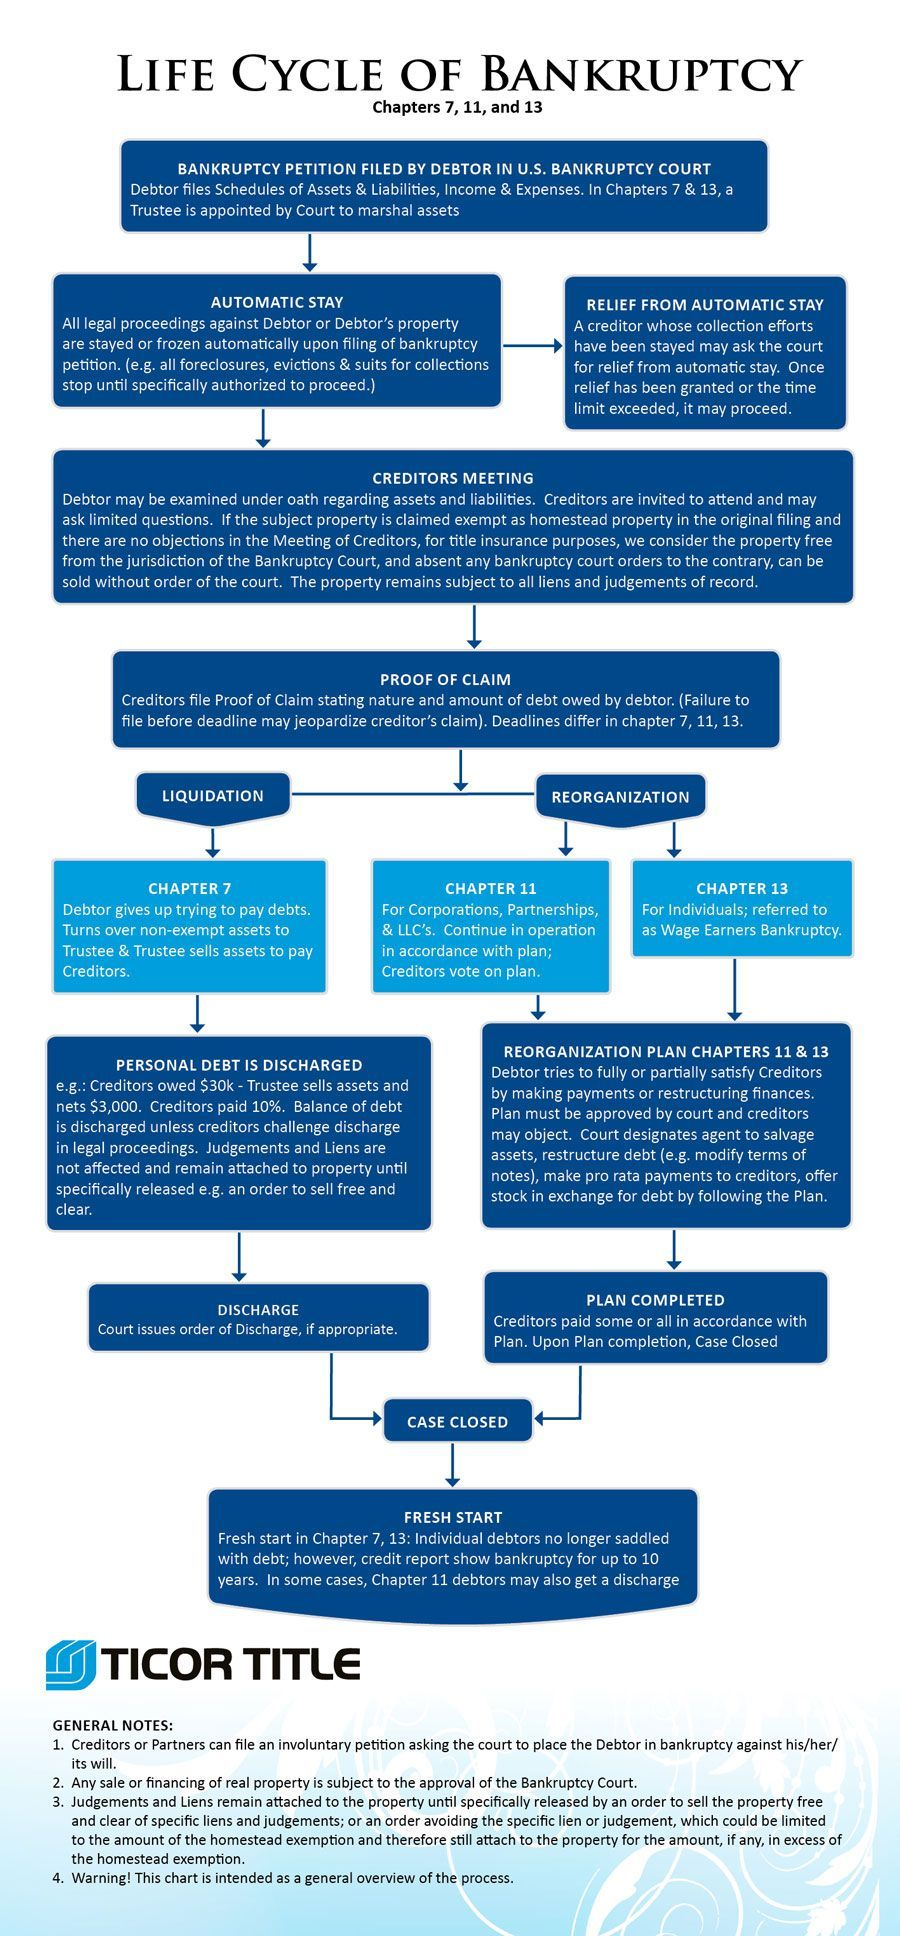 Life Cycle Of Bankruptcy Infographic Chapters 7 11 And 13 Credit Repair Companies Refinance Mortgage Credit Repair